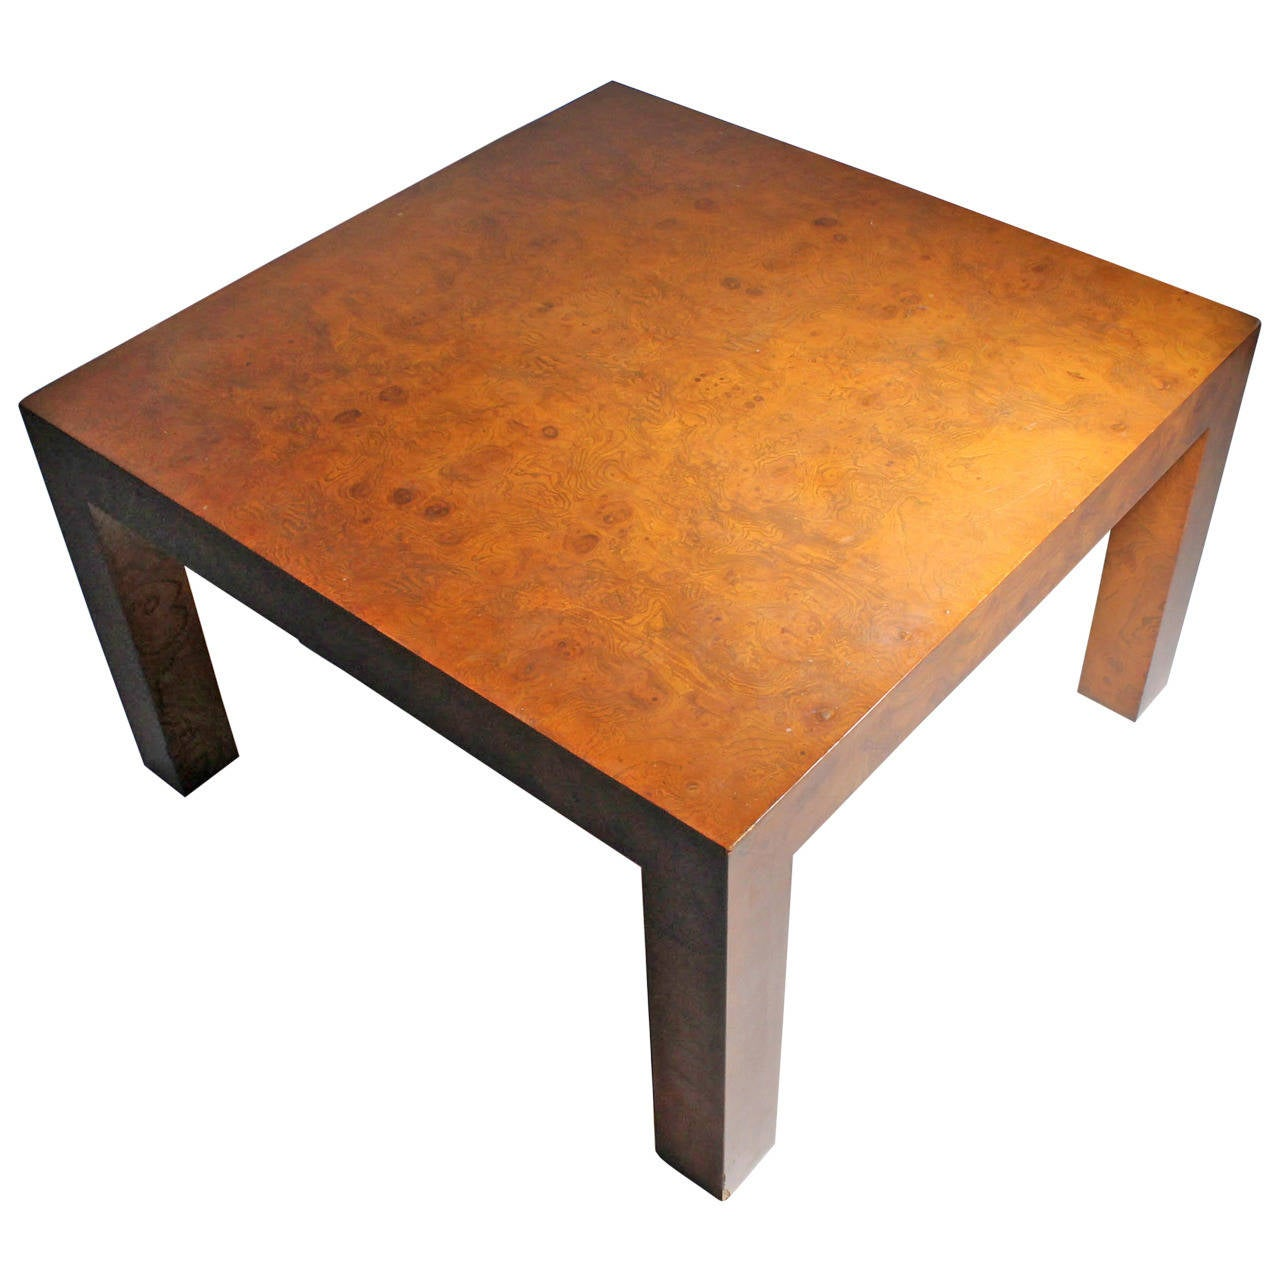 Milo Baughman Burl Olivewood Parsons Coffee Table For Sale At 1stdibs